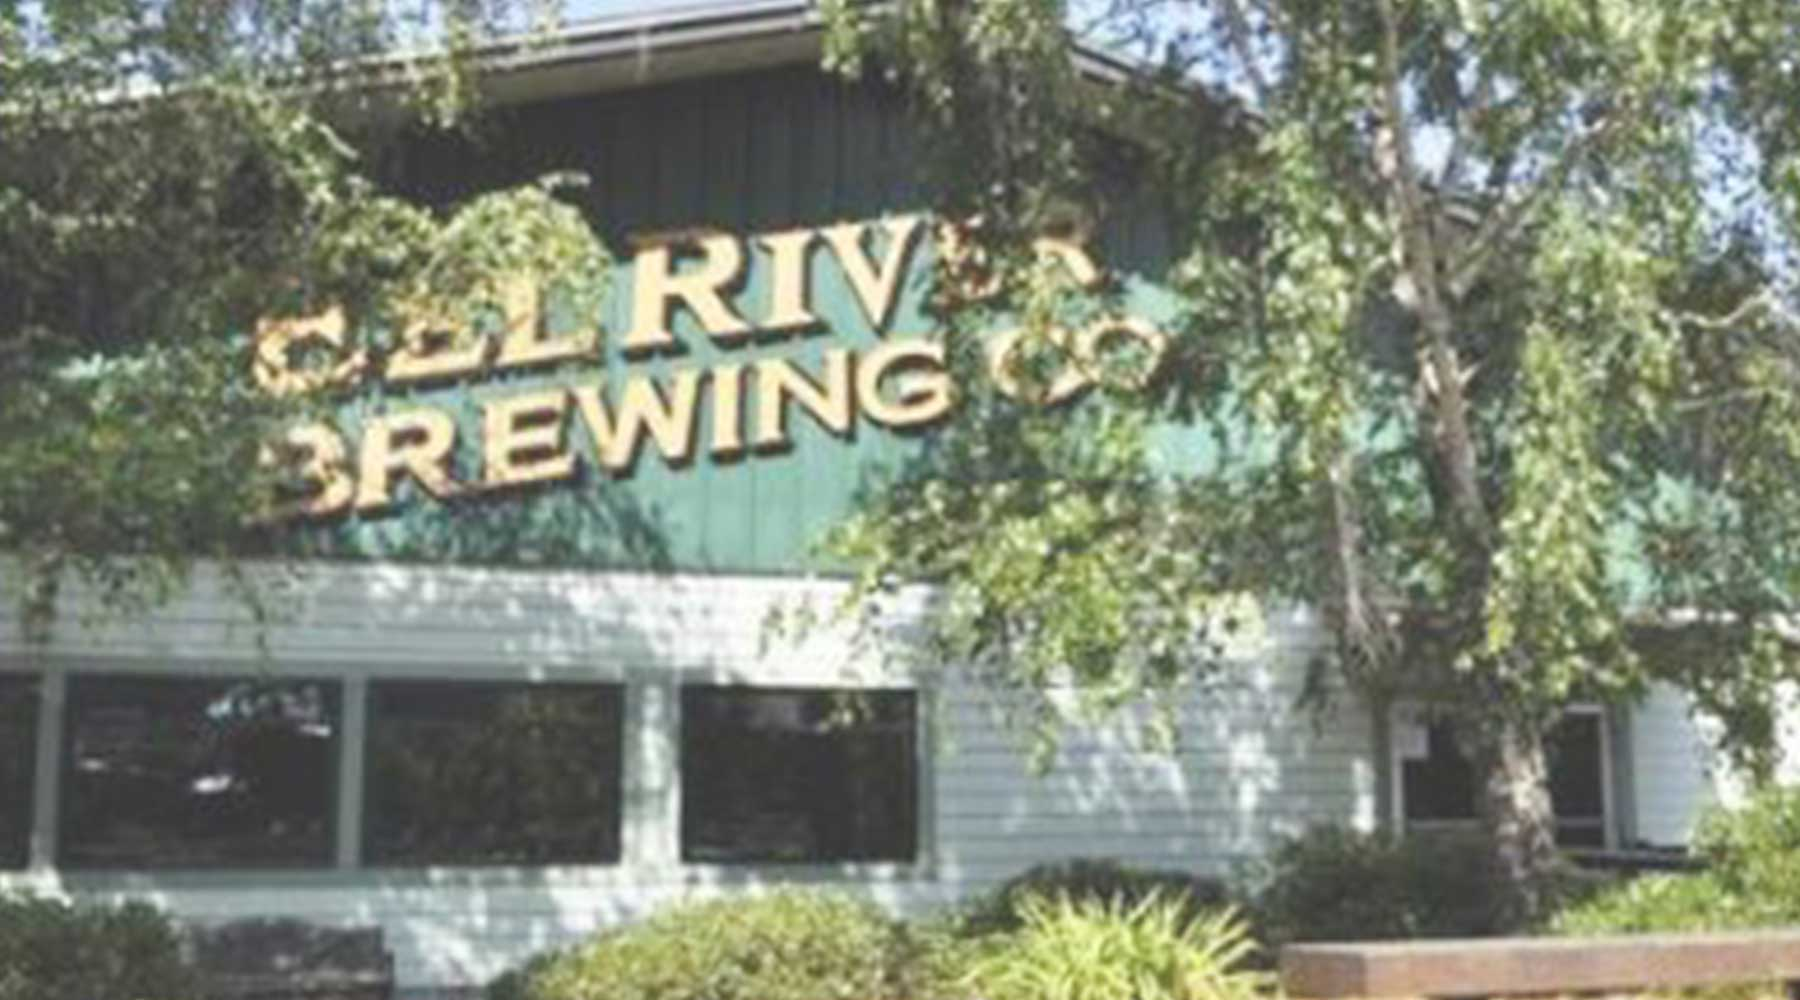 Eel River Brewing Co. | Just Wine